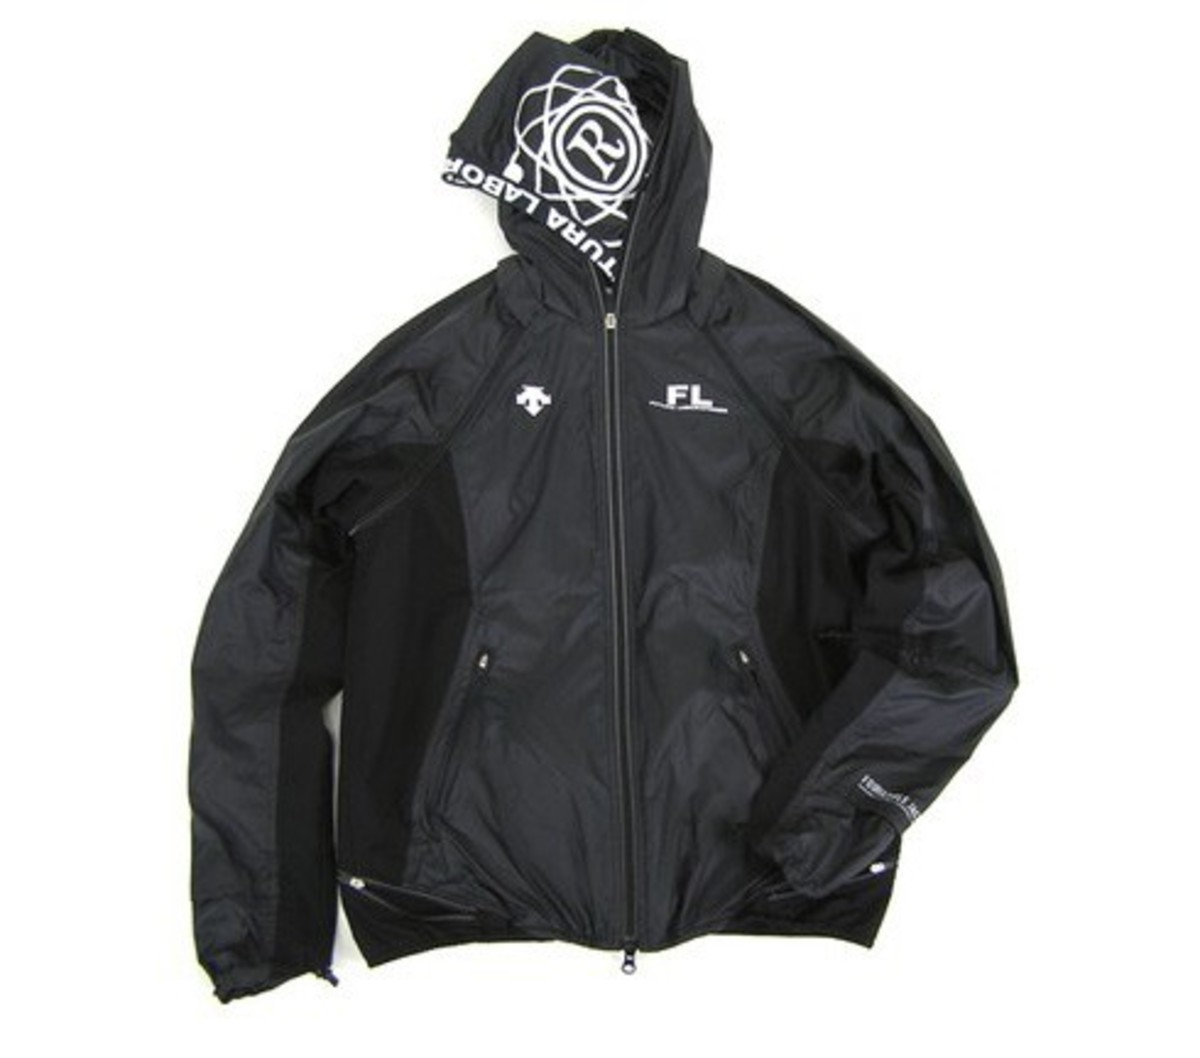 four-4-able-jacket-solid-model.jpg